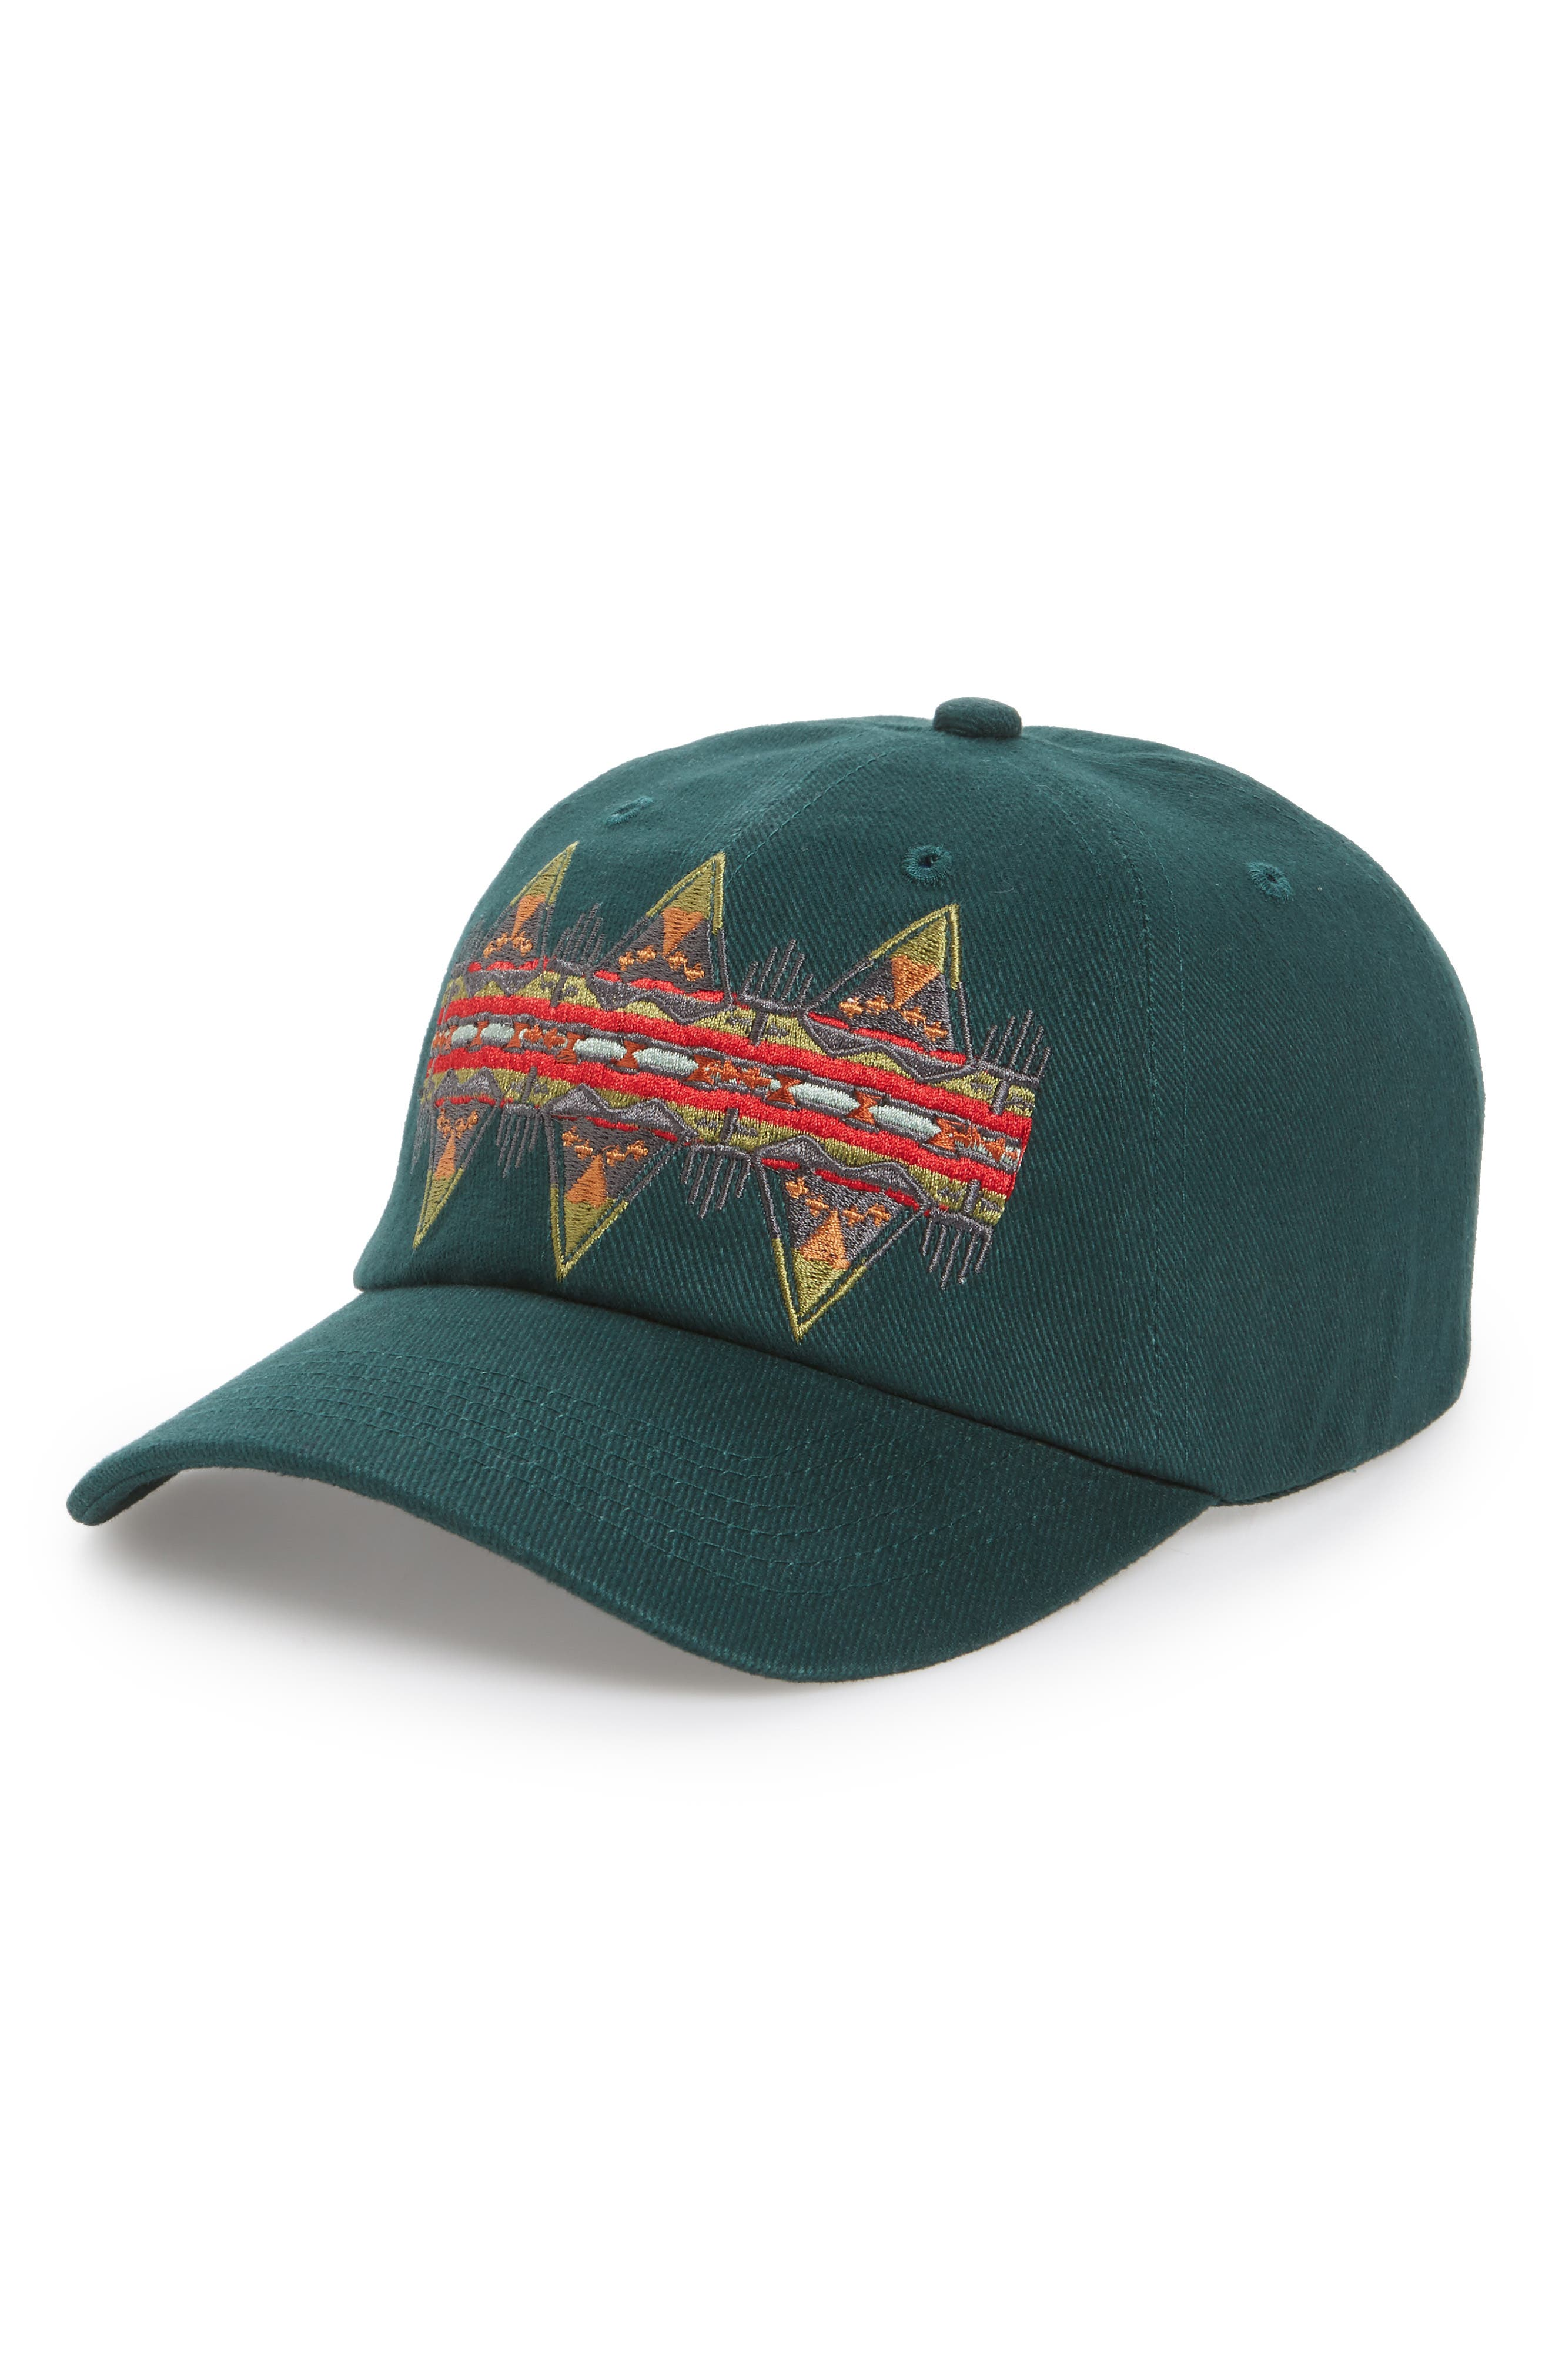 Embroidered Ball Cap,                             Main thumbnail 1, color,                             315